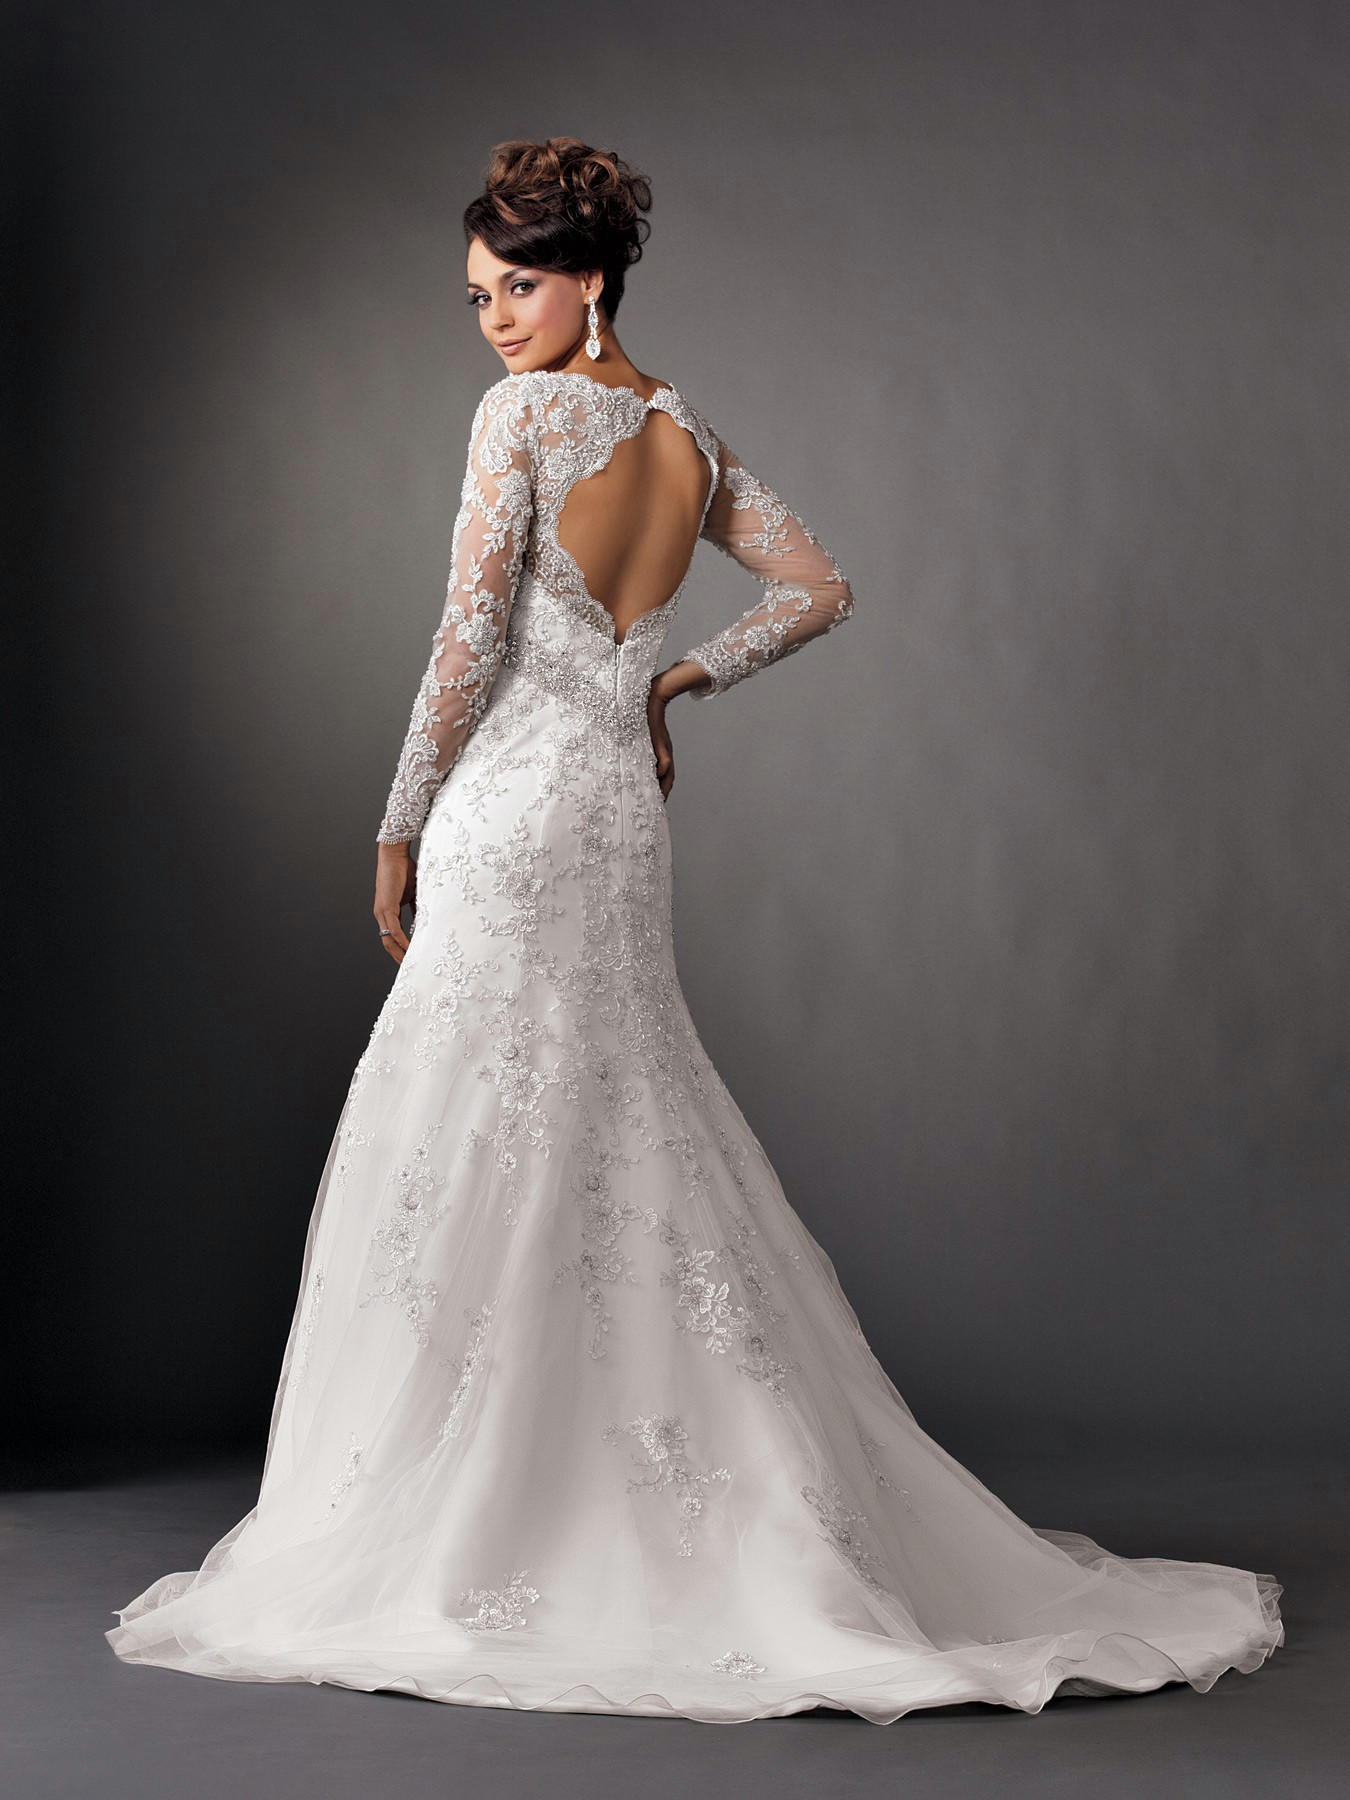 2014 – 2015 Wedding Dress Trends – Lace Sleeves – Dipped